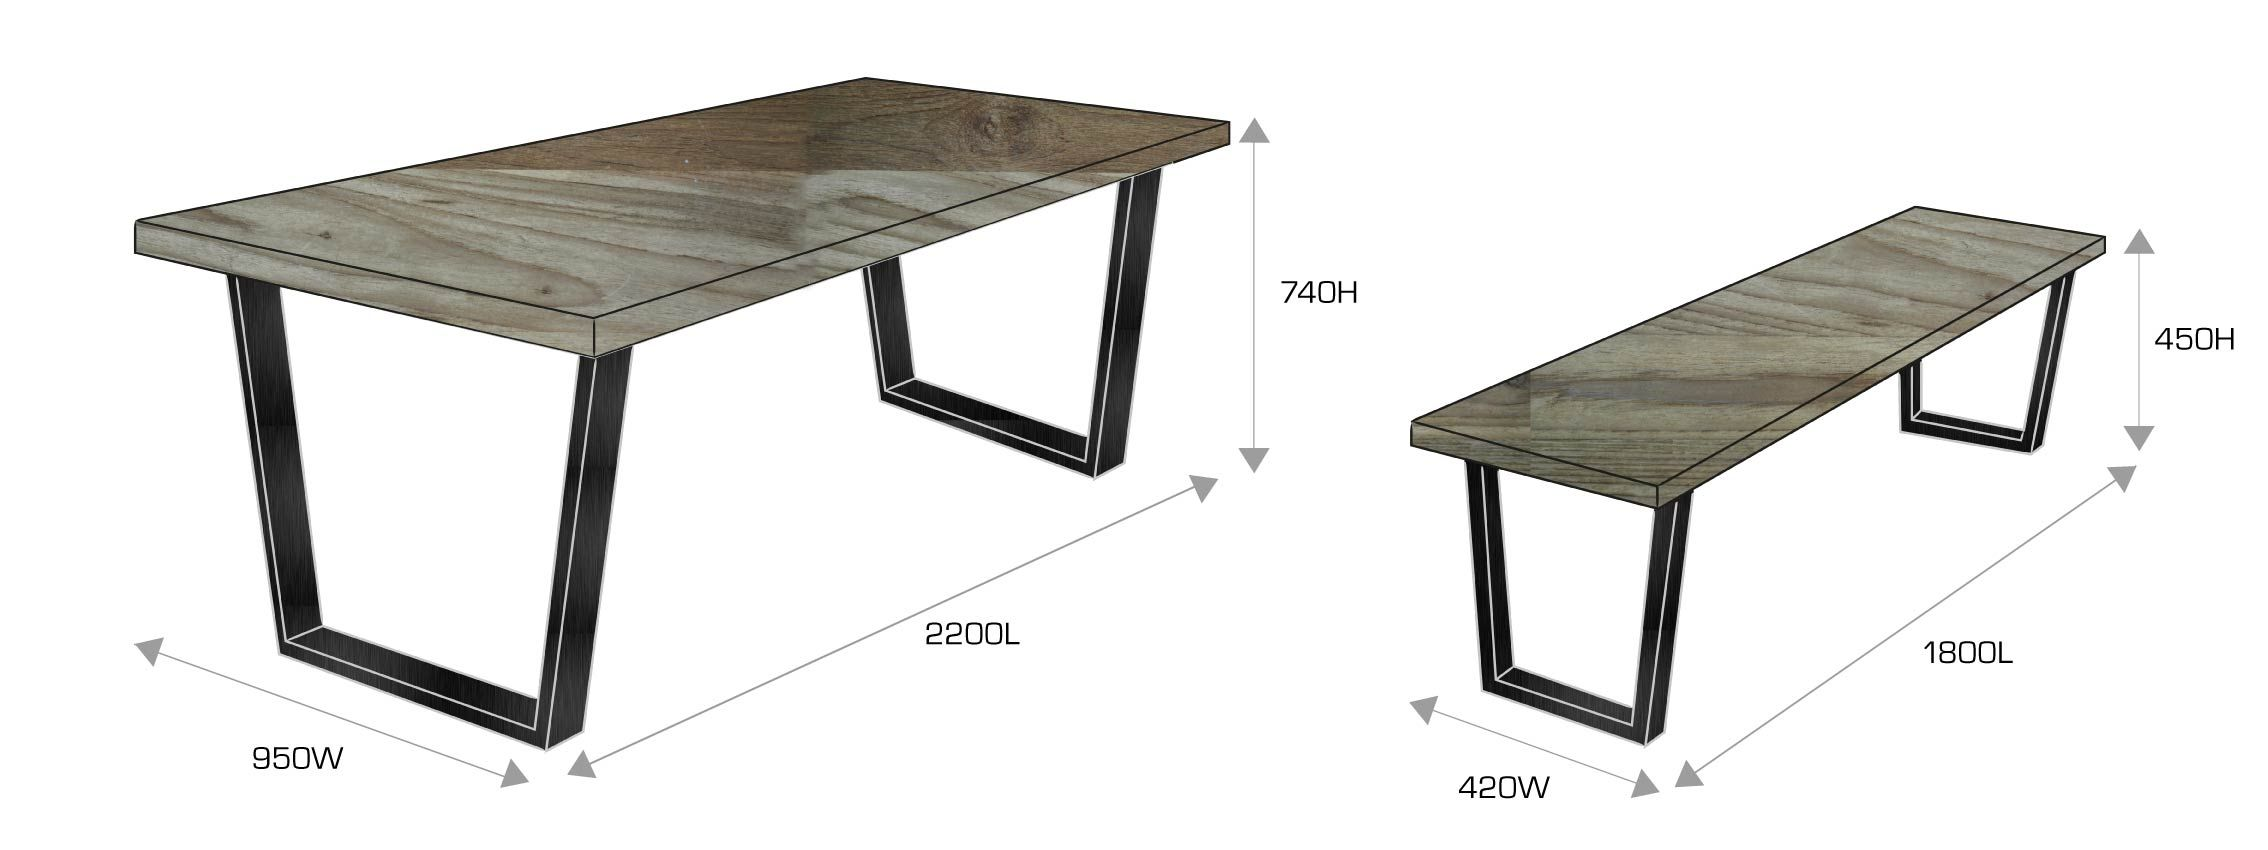 Dining Chairs Dimensions Standard Industrial Style Jpg 2268 850 Dining Table Bench Seat Dining Table Dimensions Dining Table With Bench